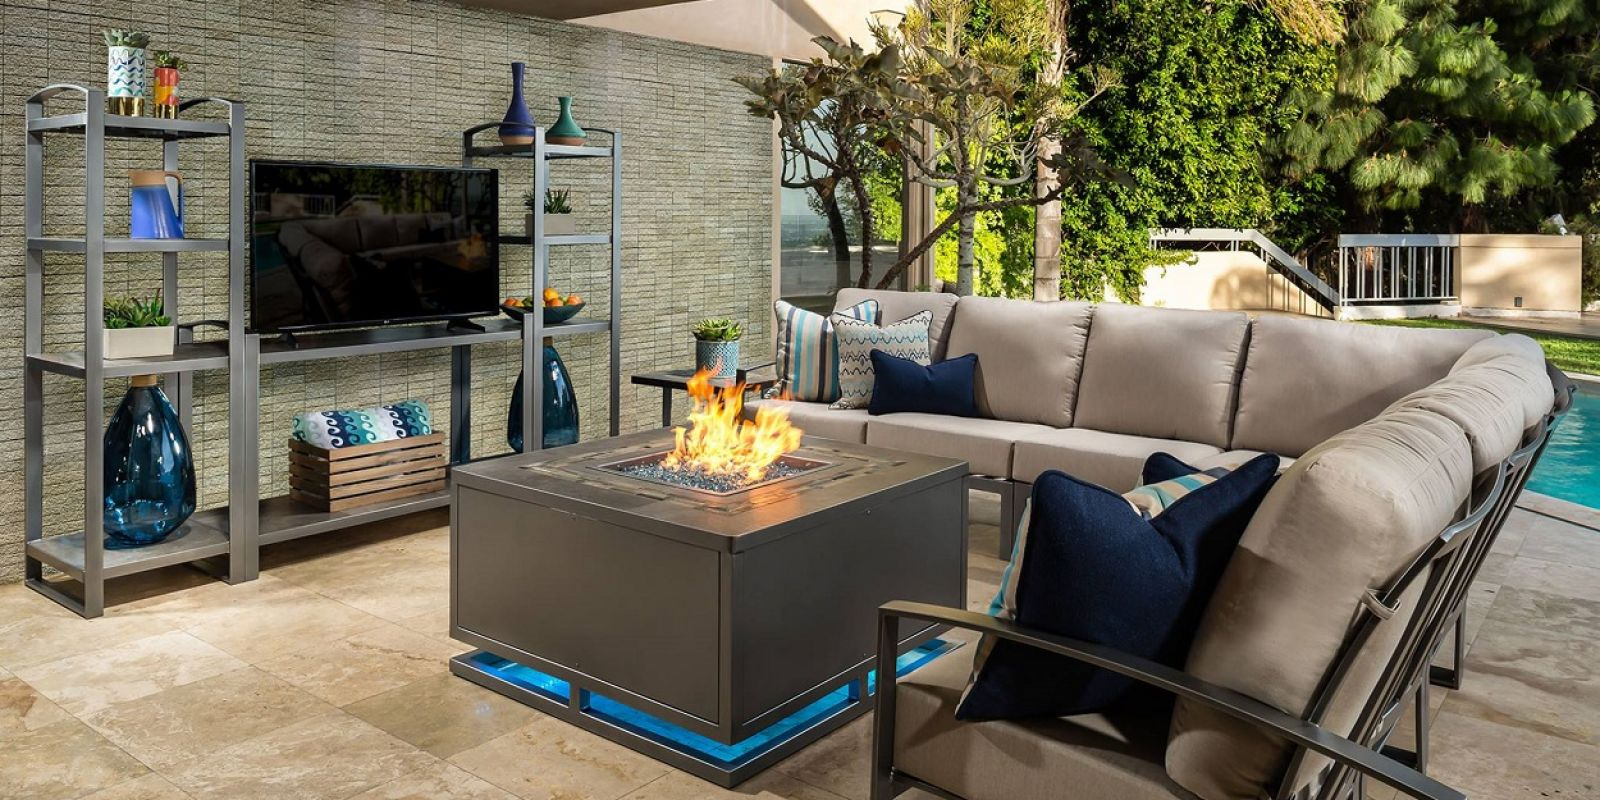 Outdoor Patio Design Specialist | American Casual Living on Porch & Patio Casual Living id=71648